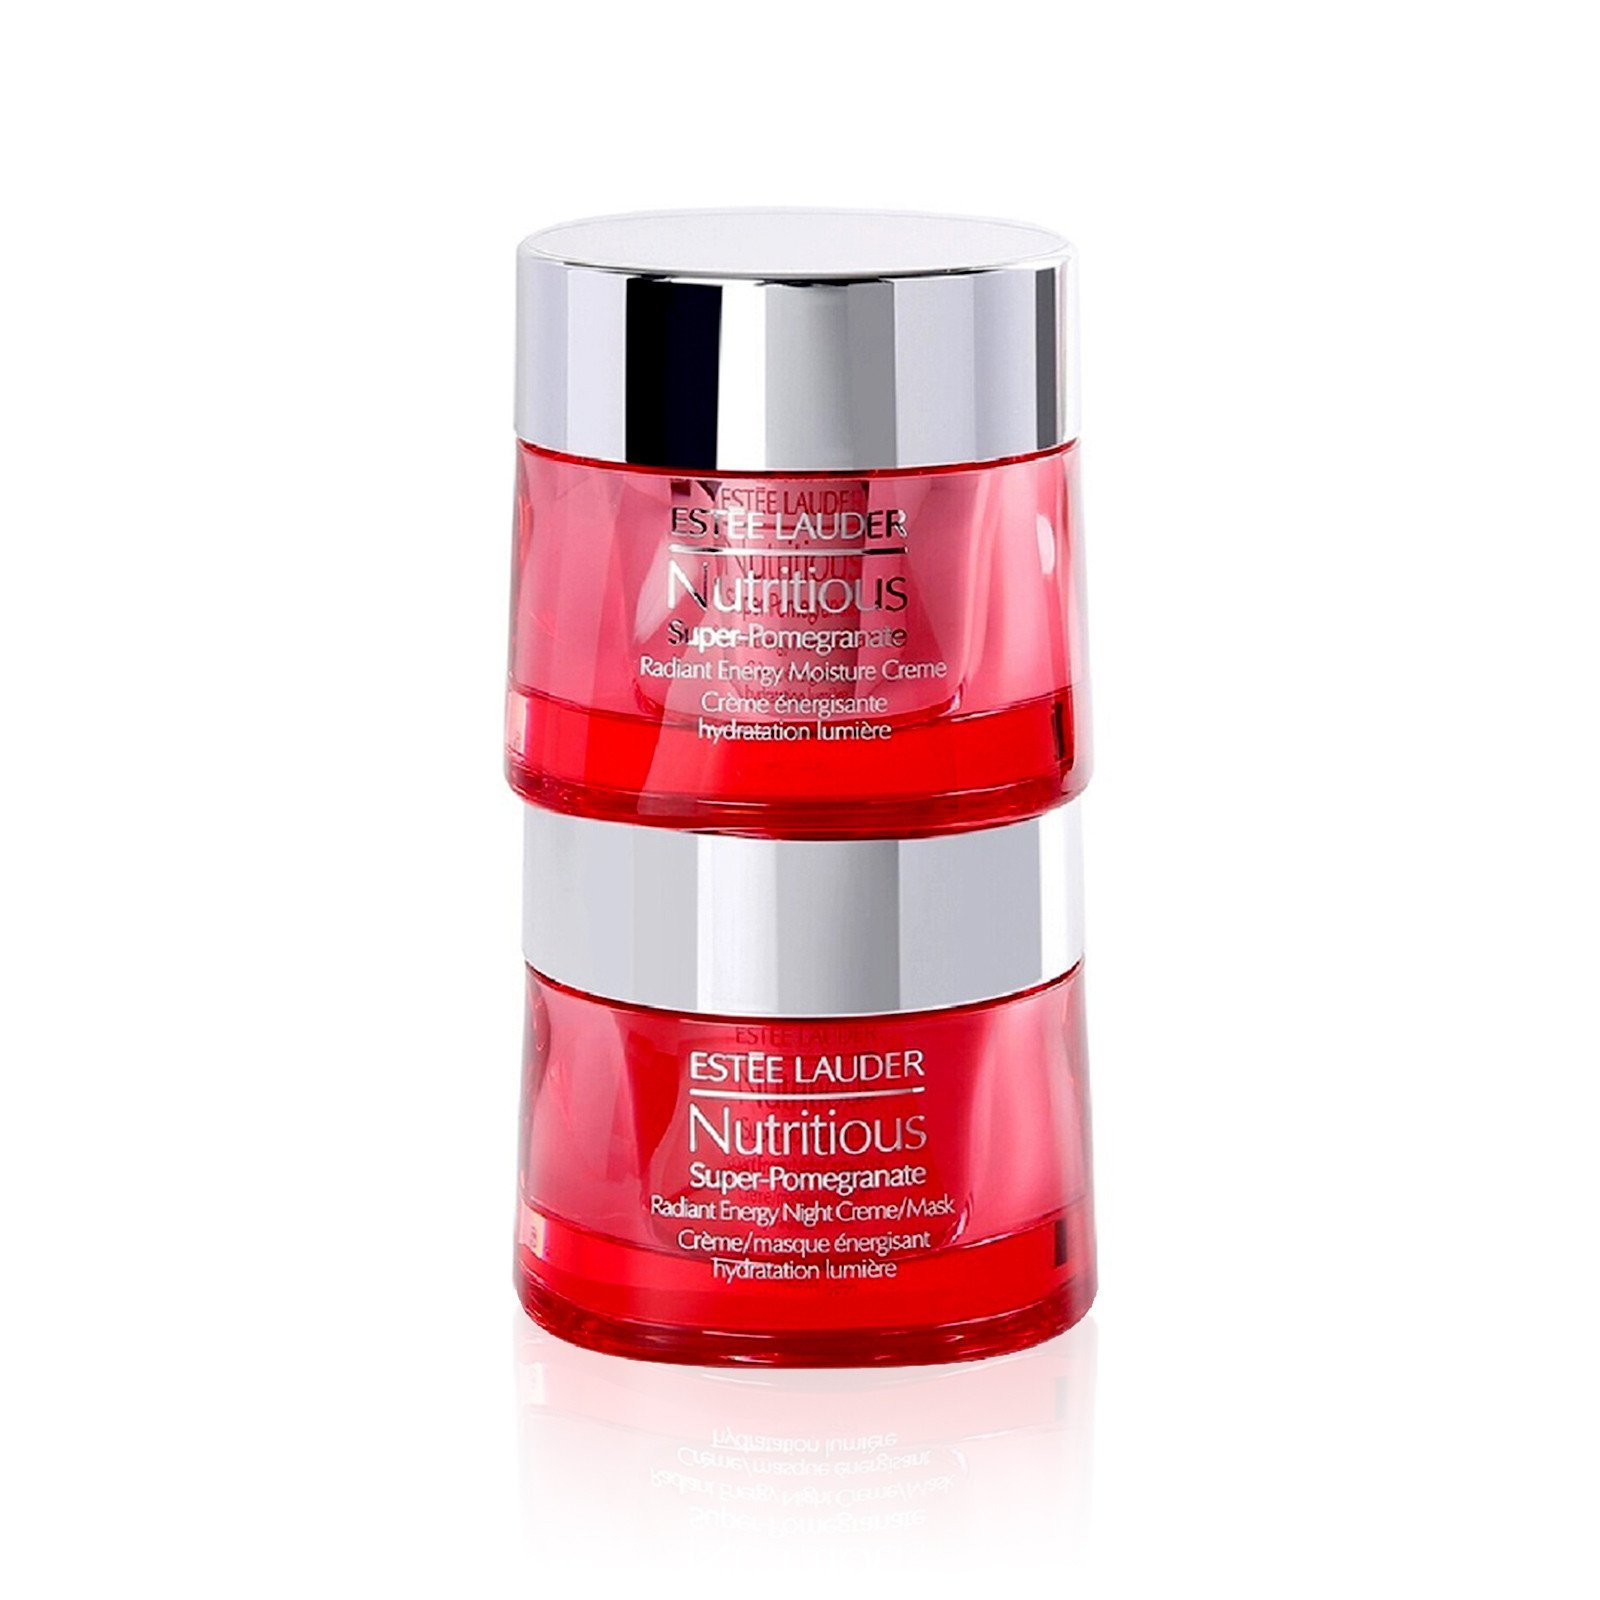 Primary image for Estee Lauder Nutritious Super-Pomegranate Radiant Energy Moisture Creme 50ml & N